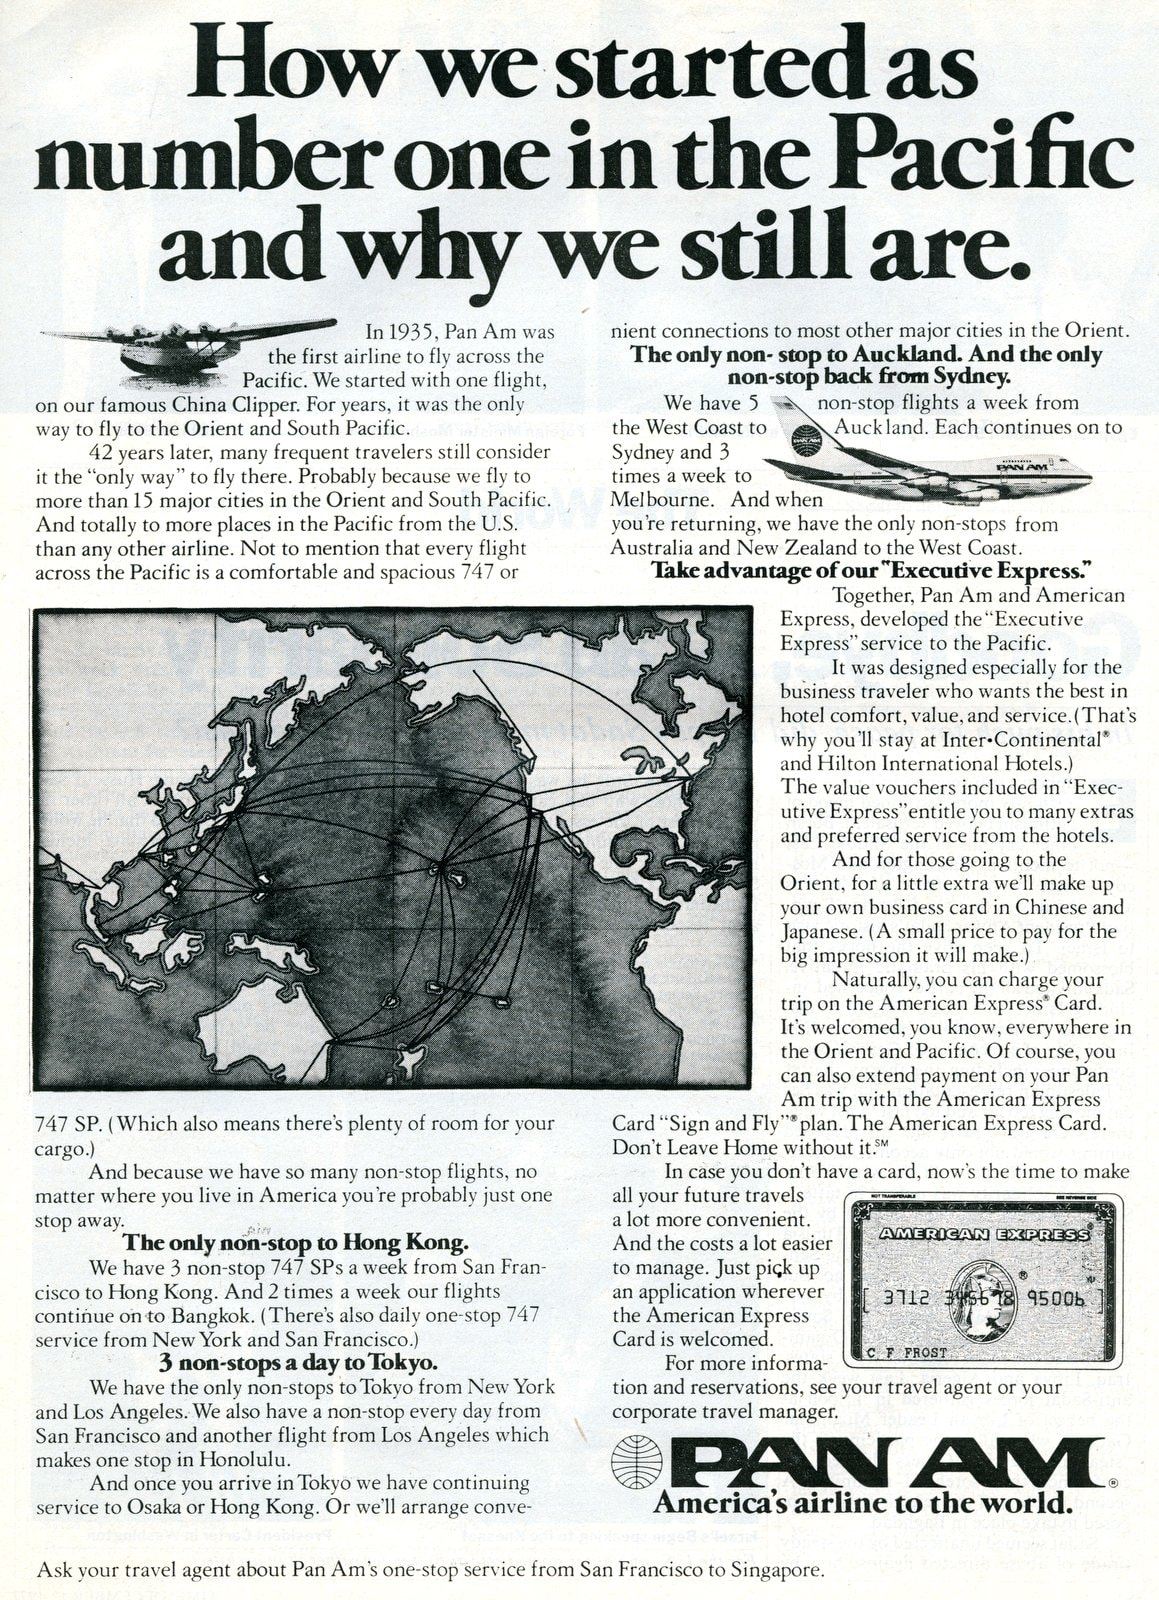 Pan Am - Number one in the Pacific (1977)